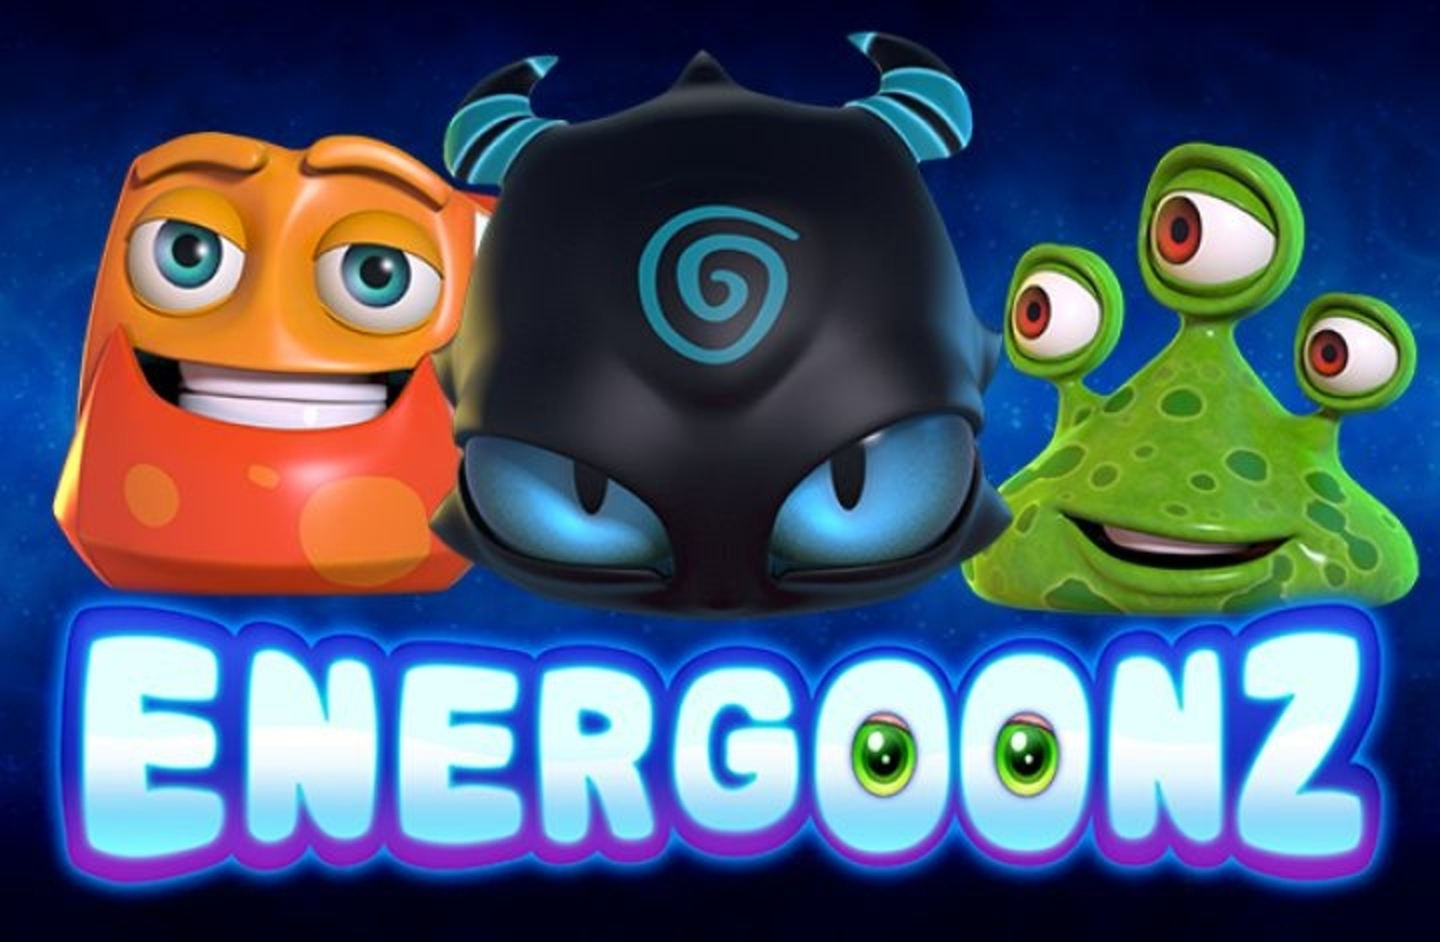 The Energoonz Online Slot Demo Game by Play'n Go